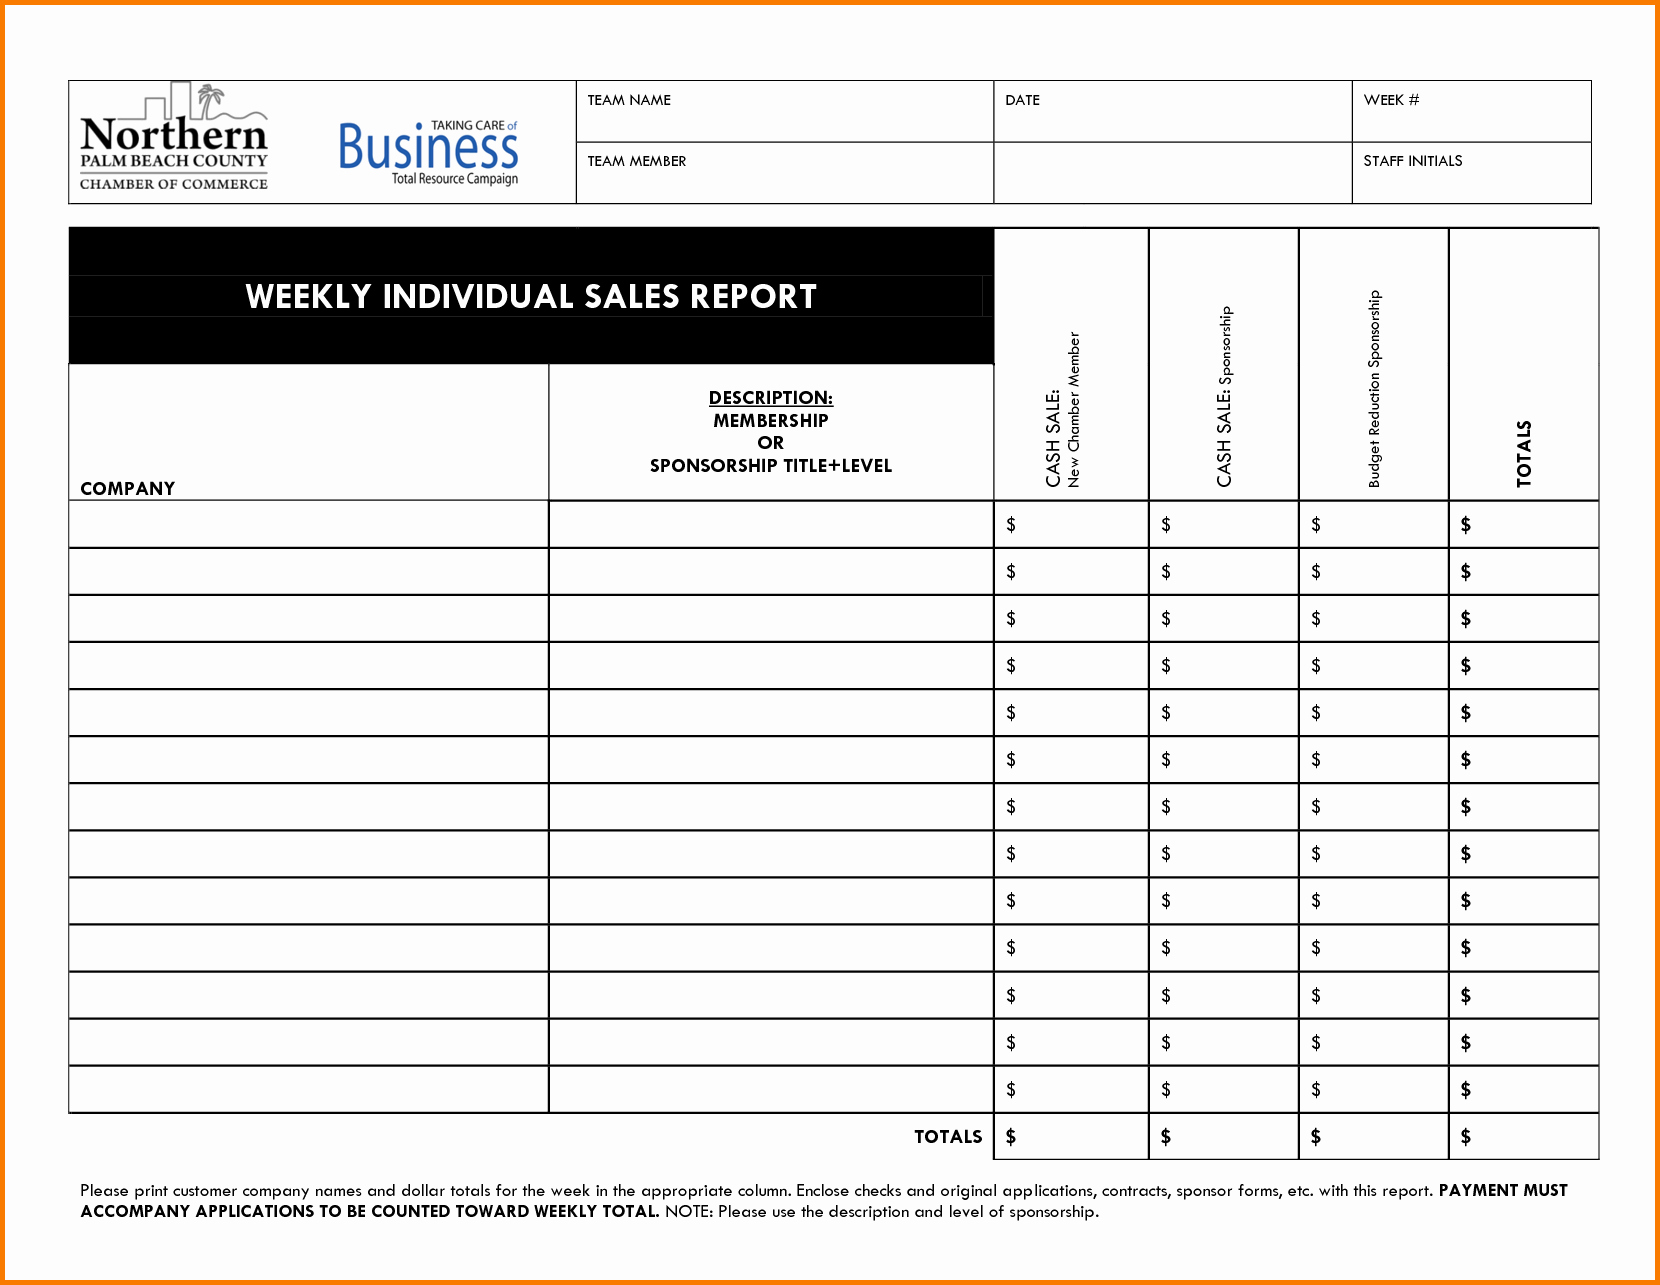 Sales Activity Report Template New Weekly Sales Report Template